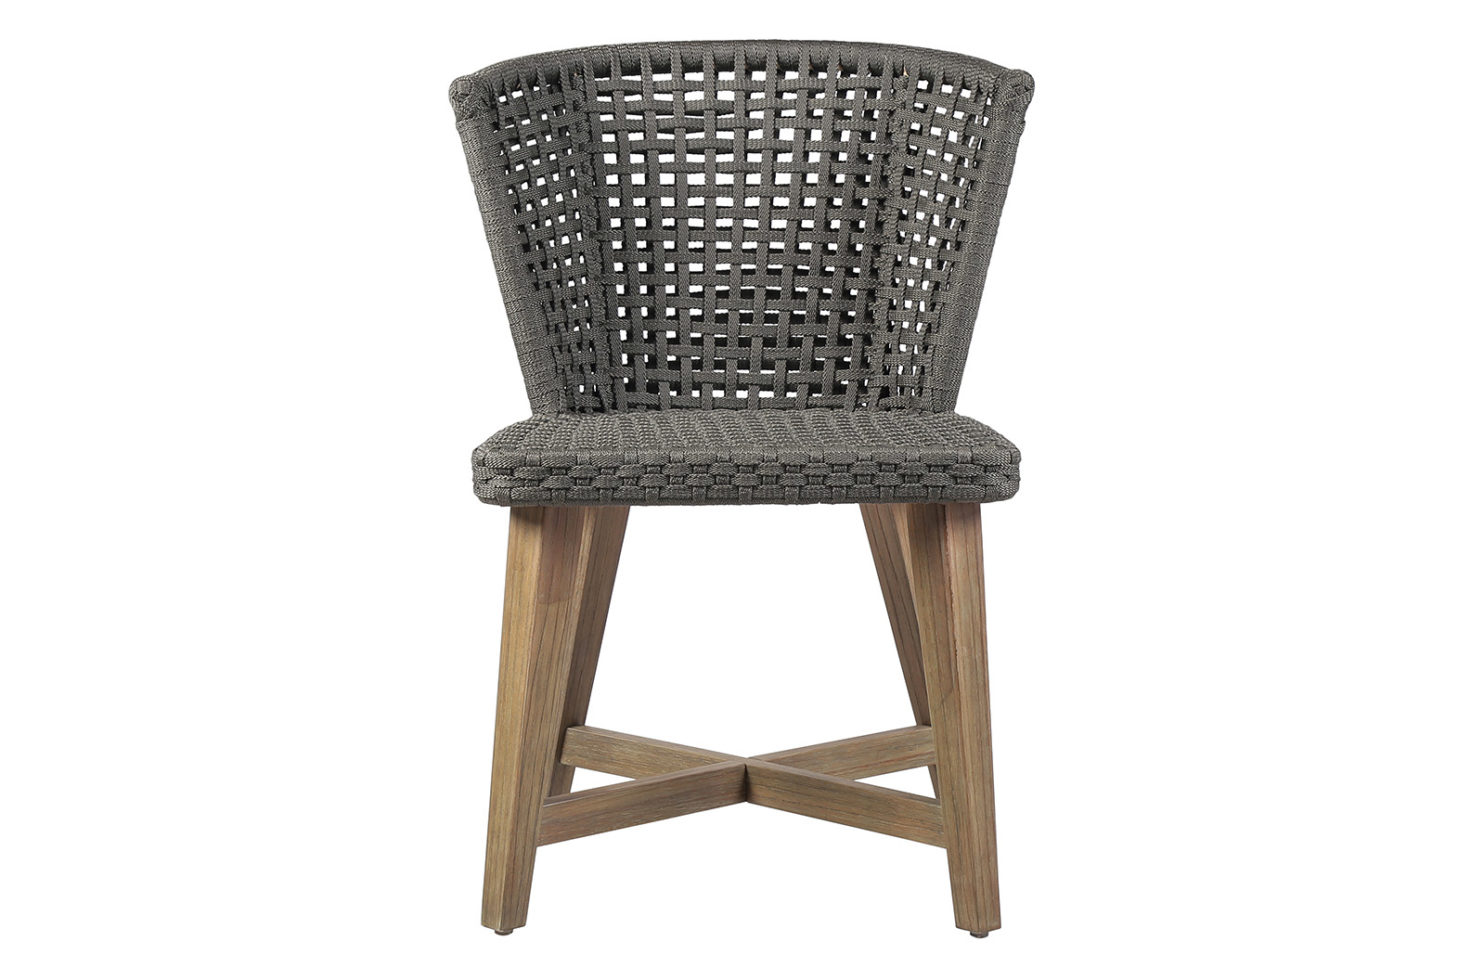 pioneer bistro chair 504FT402P2 E 1 front